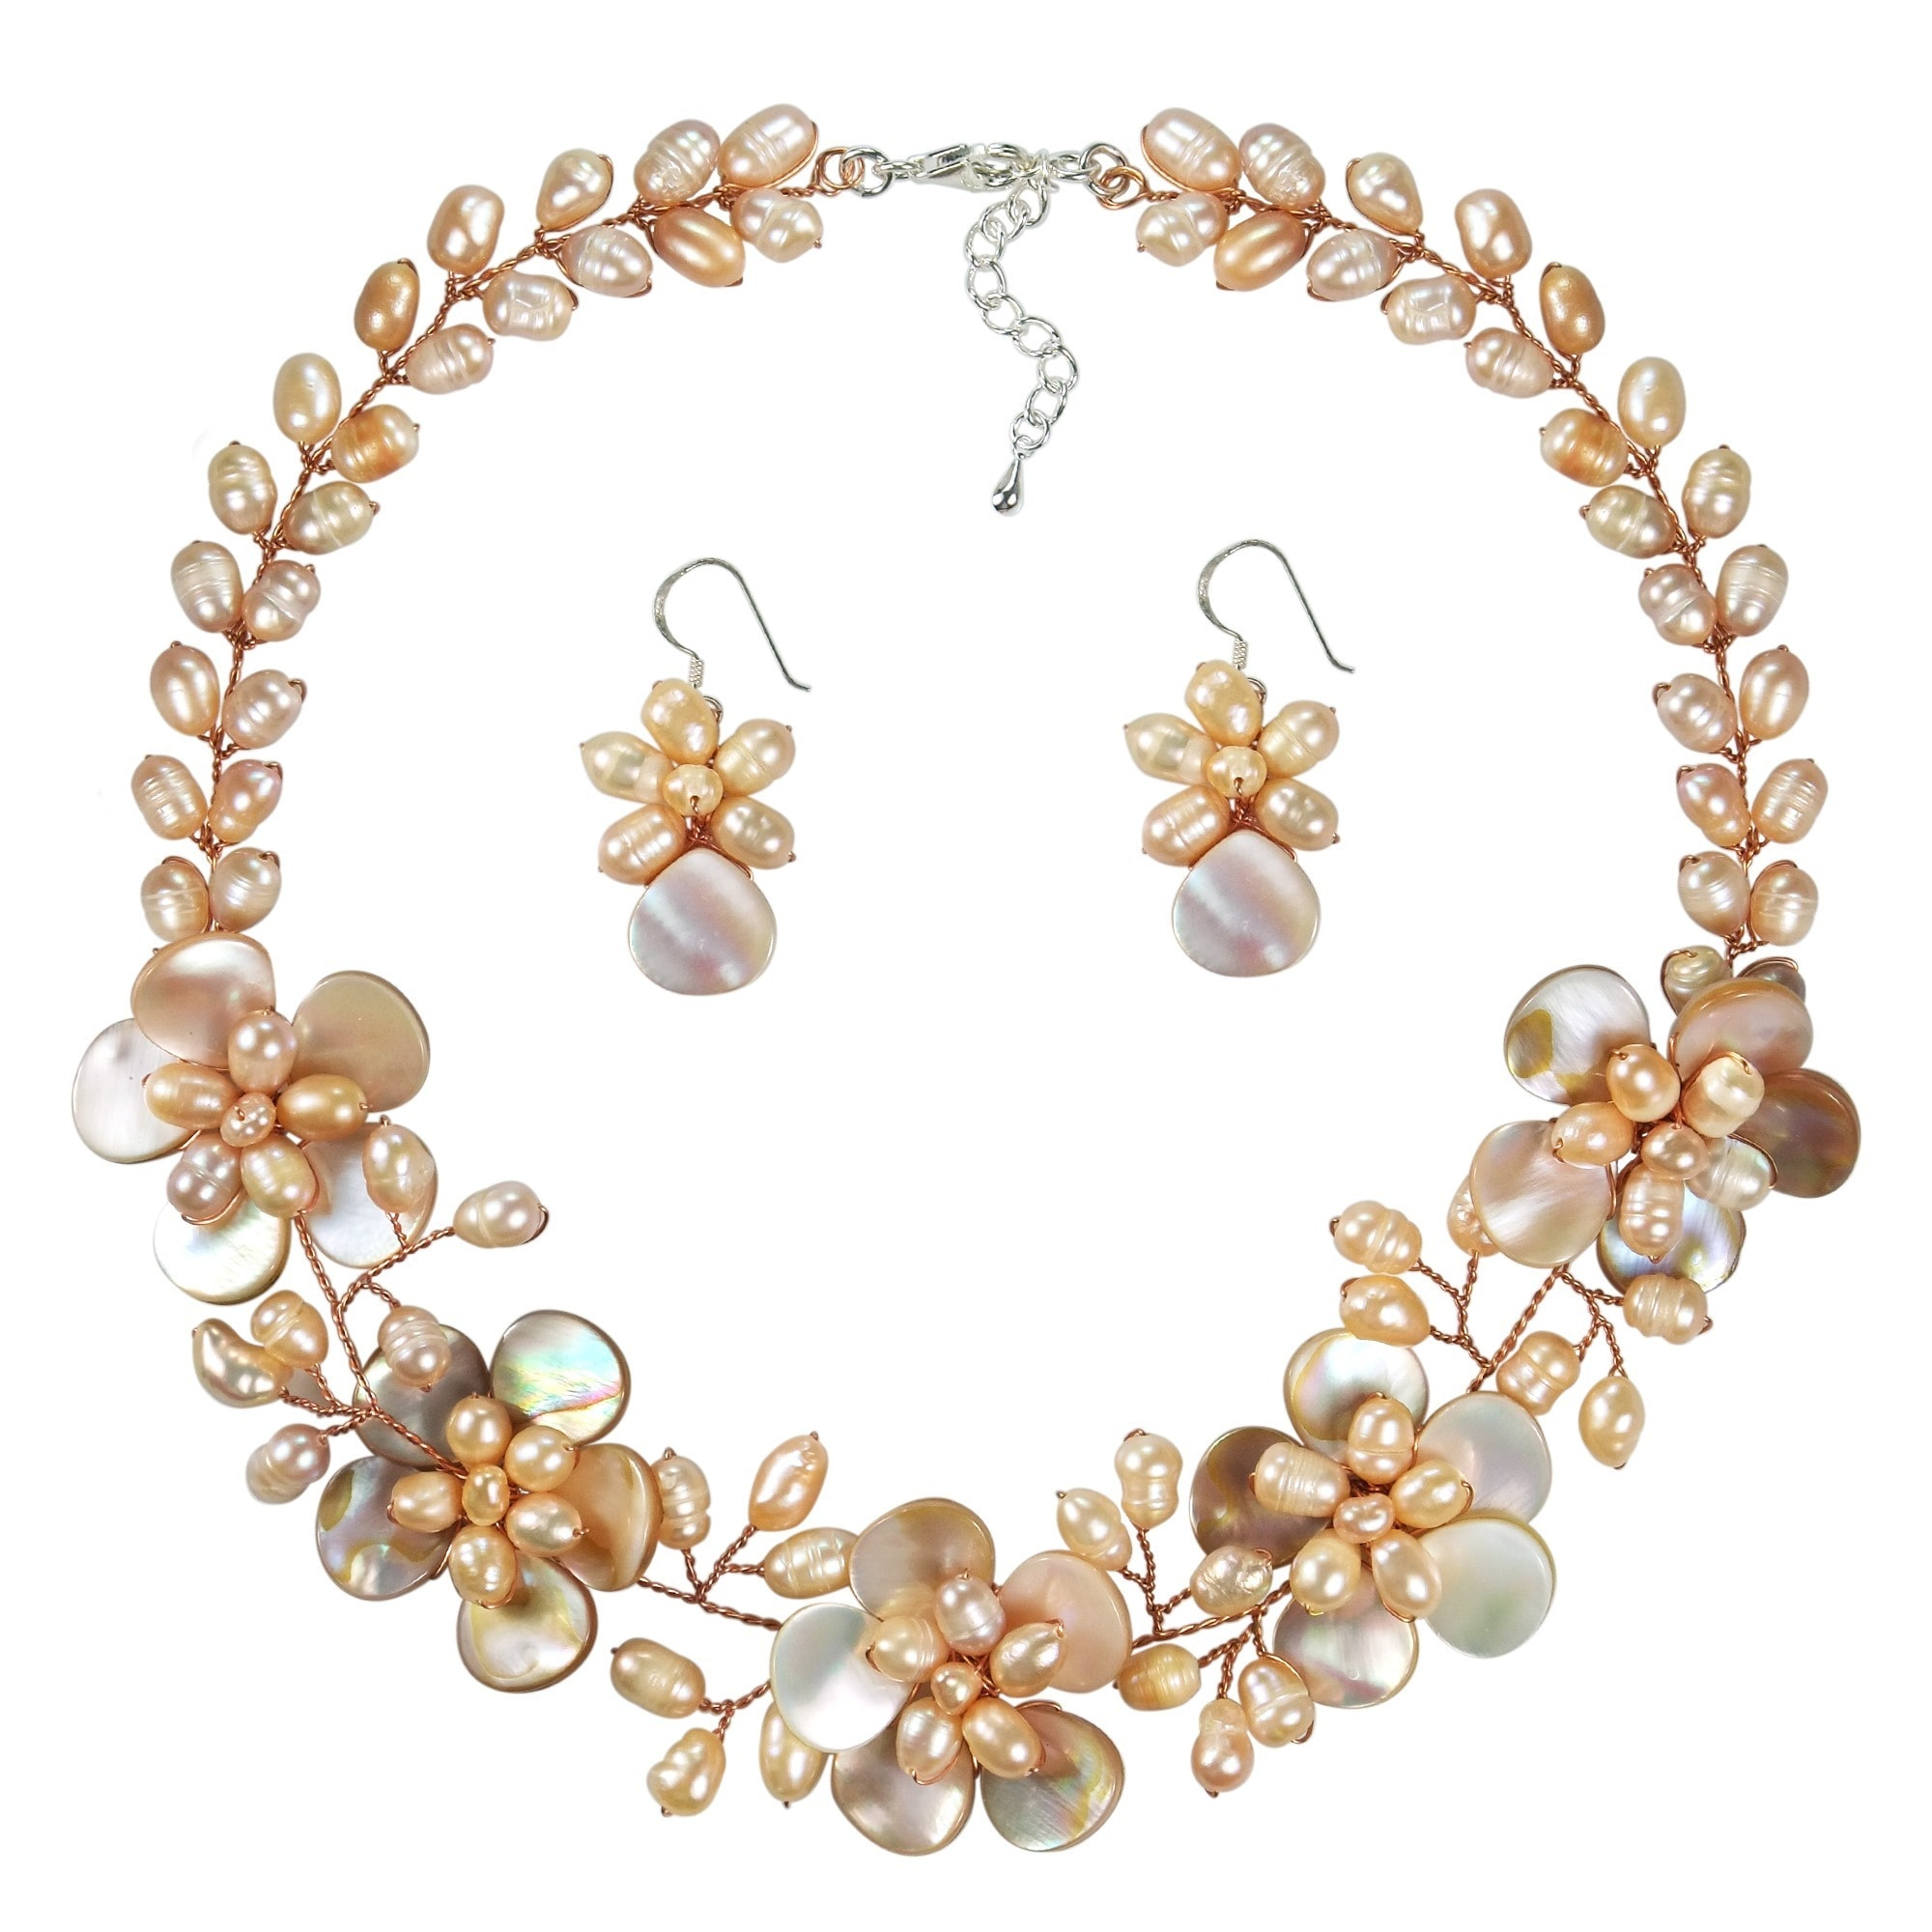 fe4d36f8eee3a Handmade Pink Pearl and Mother of Pearl Floral Jewelry Set (Thailand)